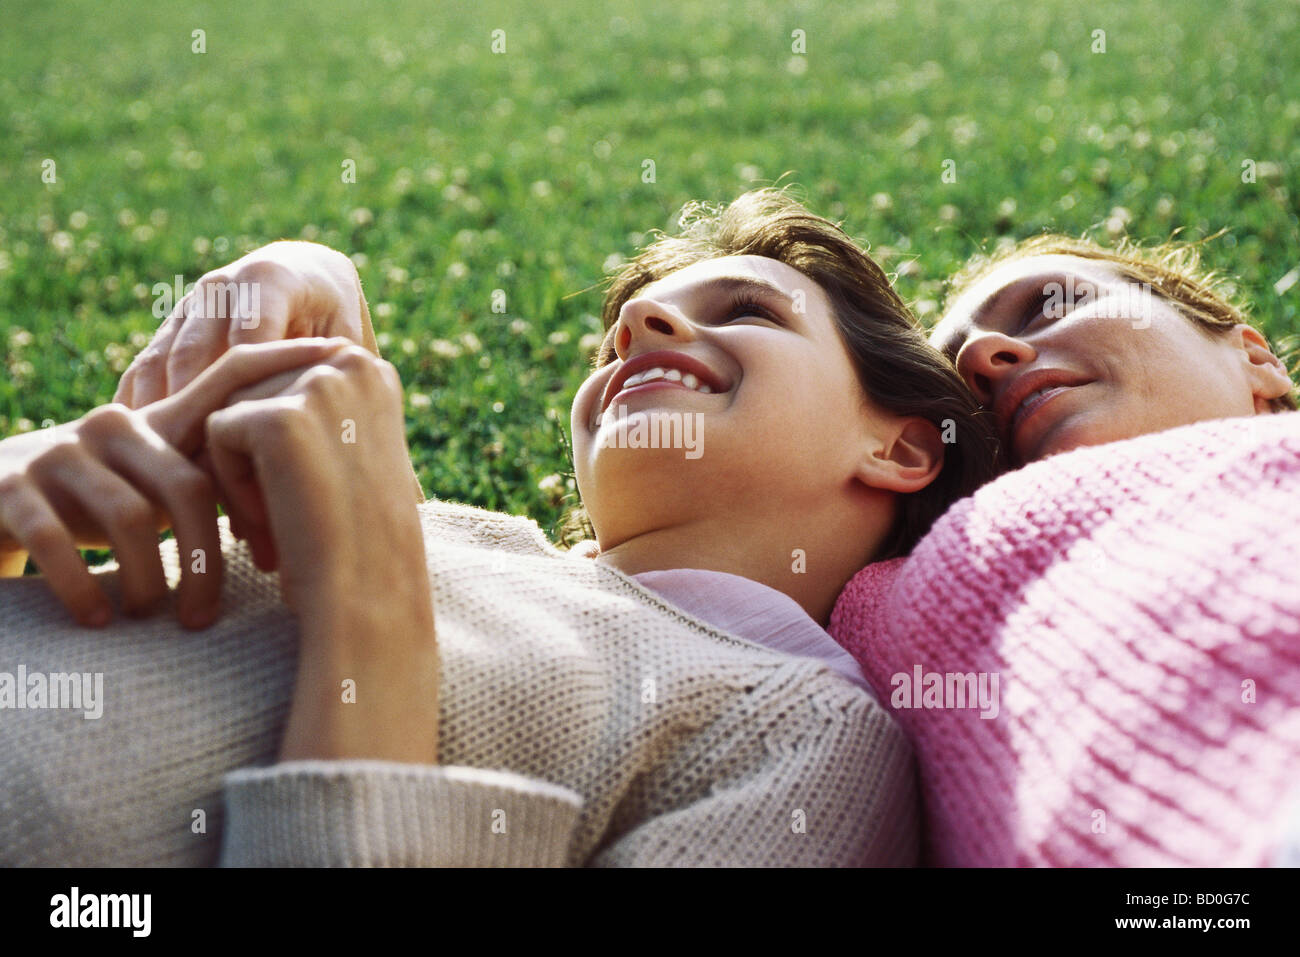 Mother and daughter reclining together on grass, girl resting head on mother's shoulder Stock Photo